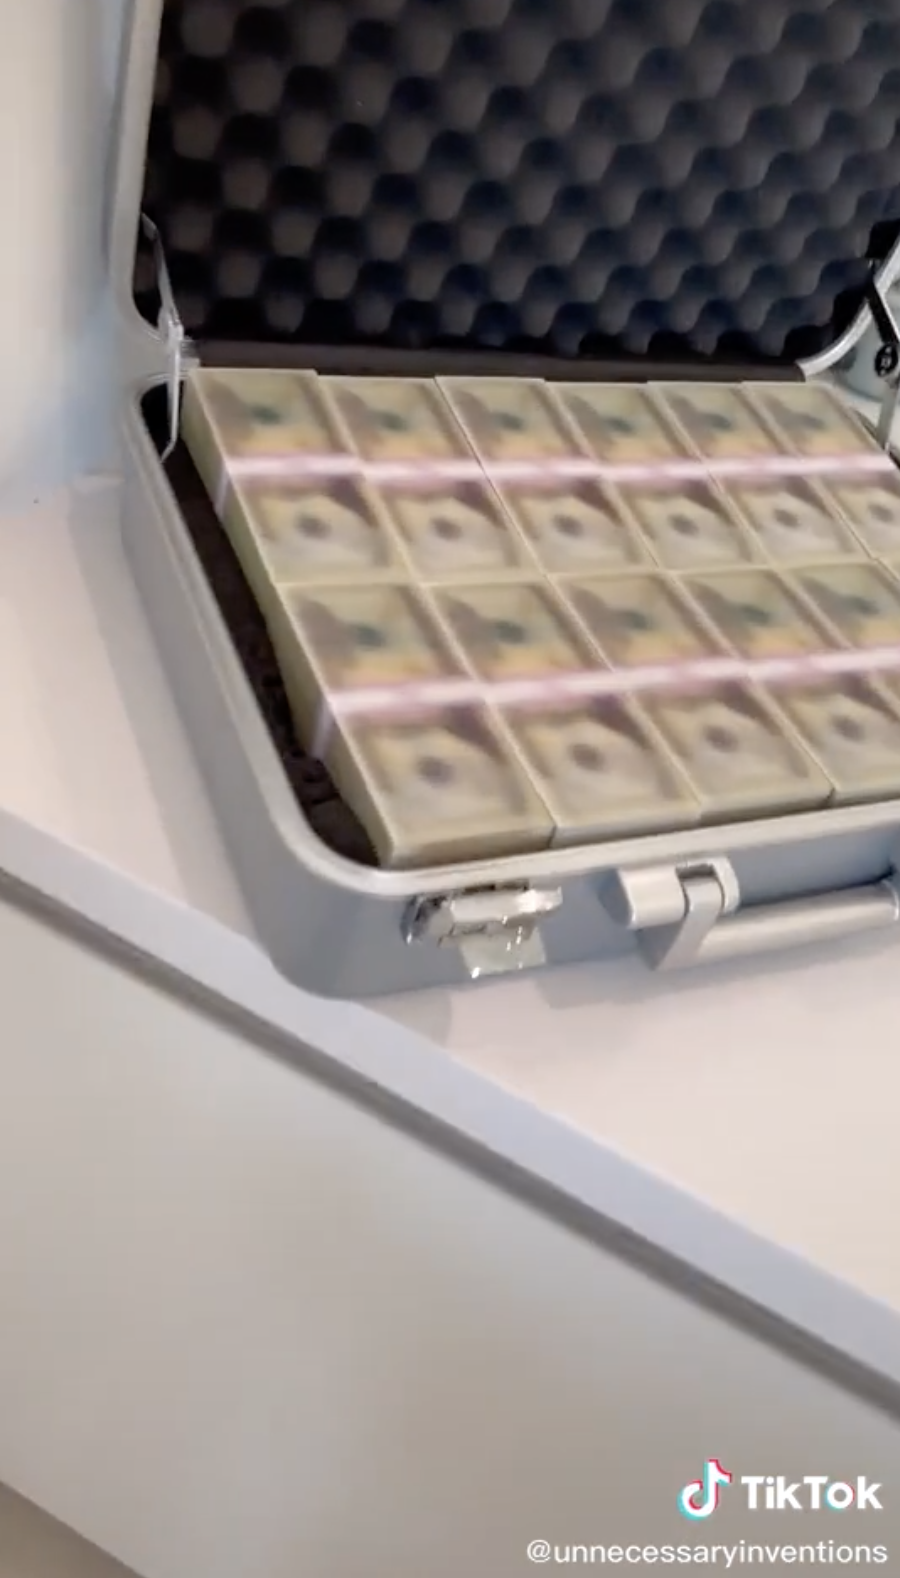 A briefcase filled with blurred money